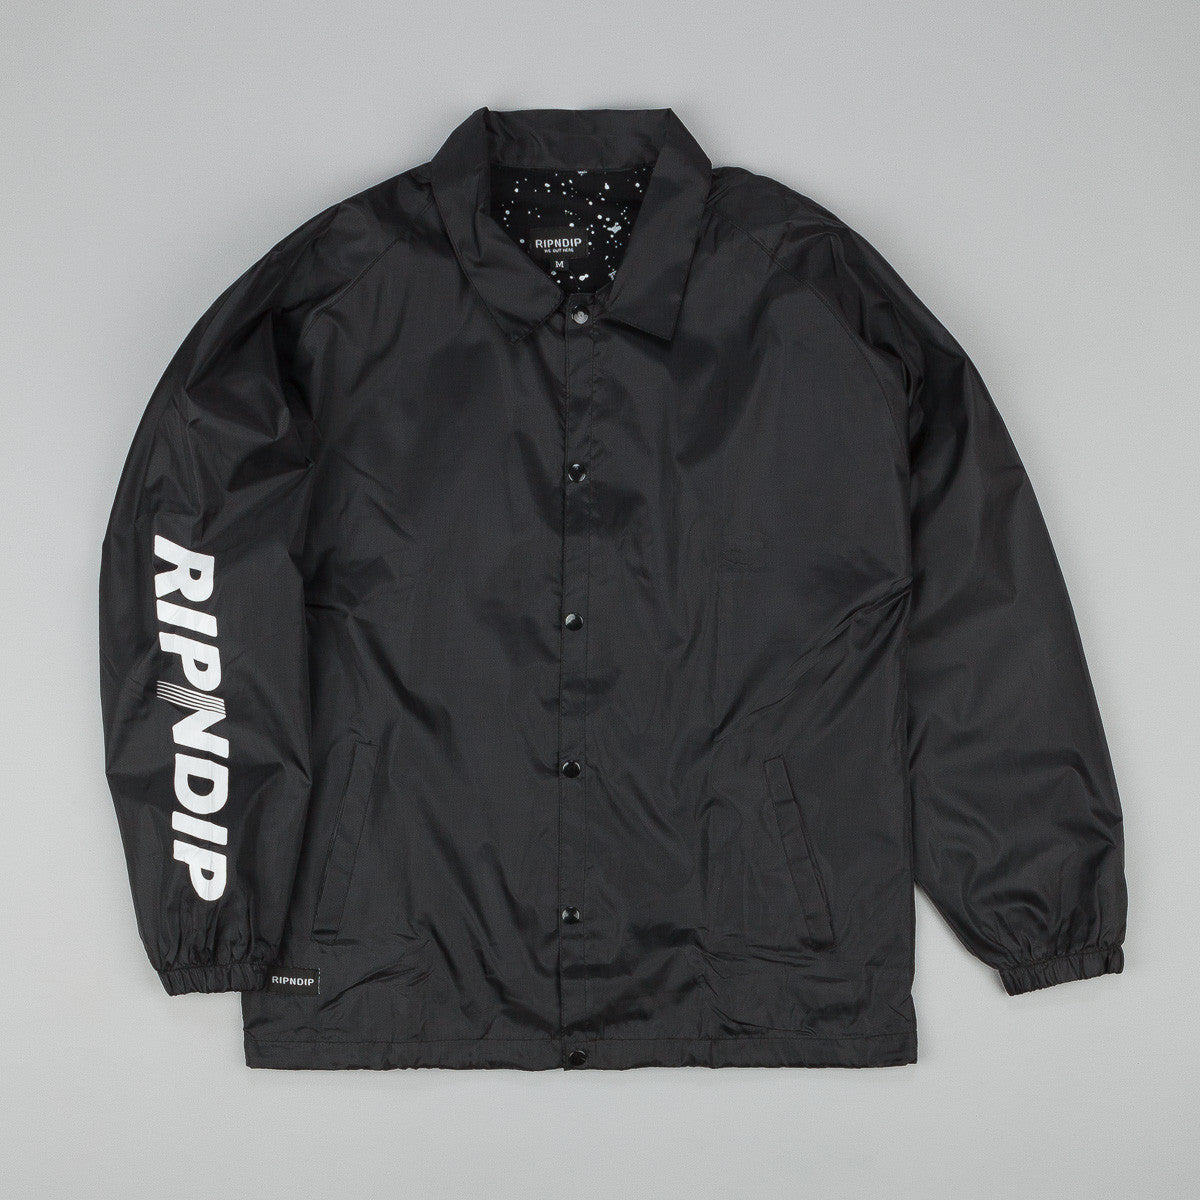 Rip N Dip Lunar Coach Jacket - Black